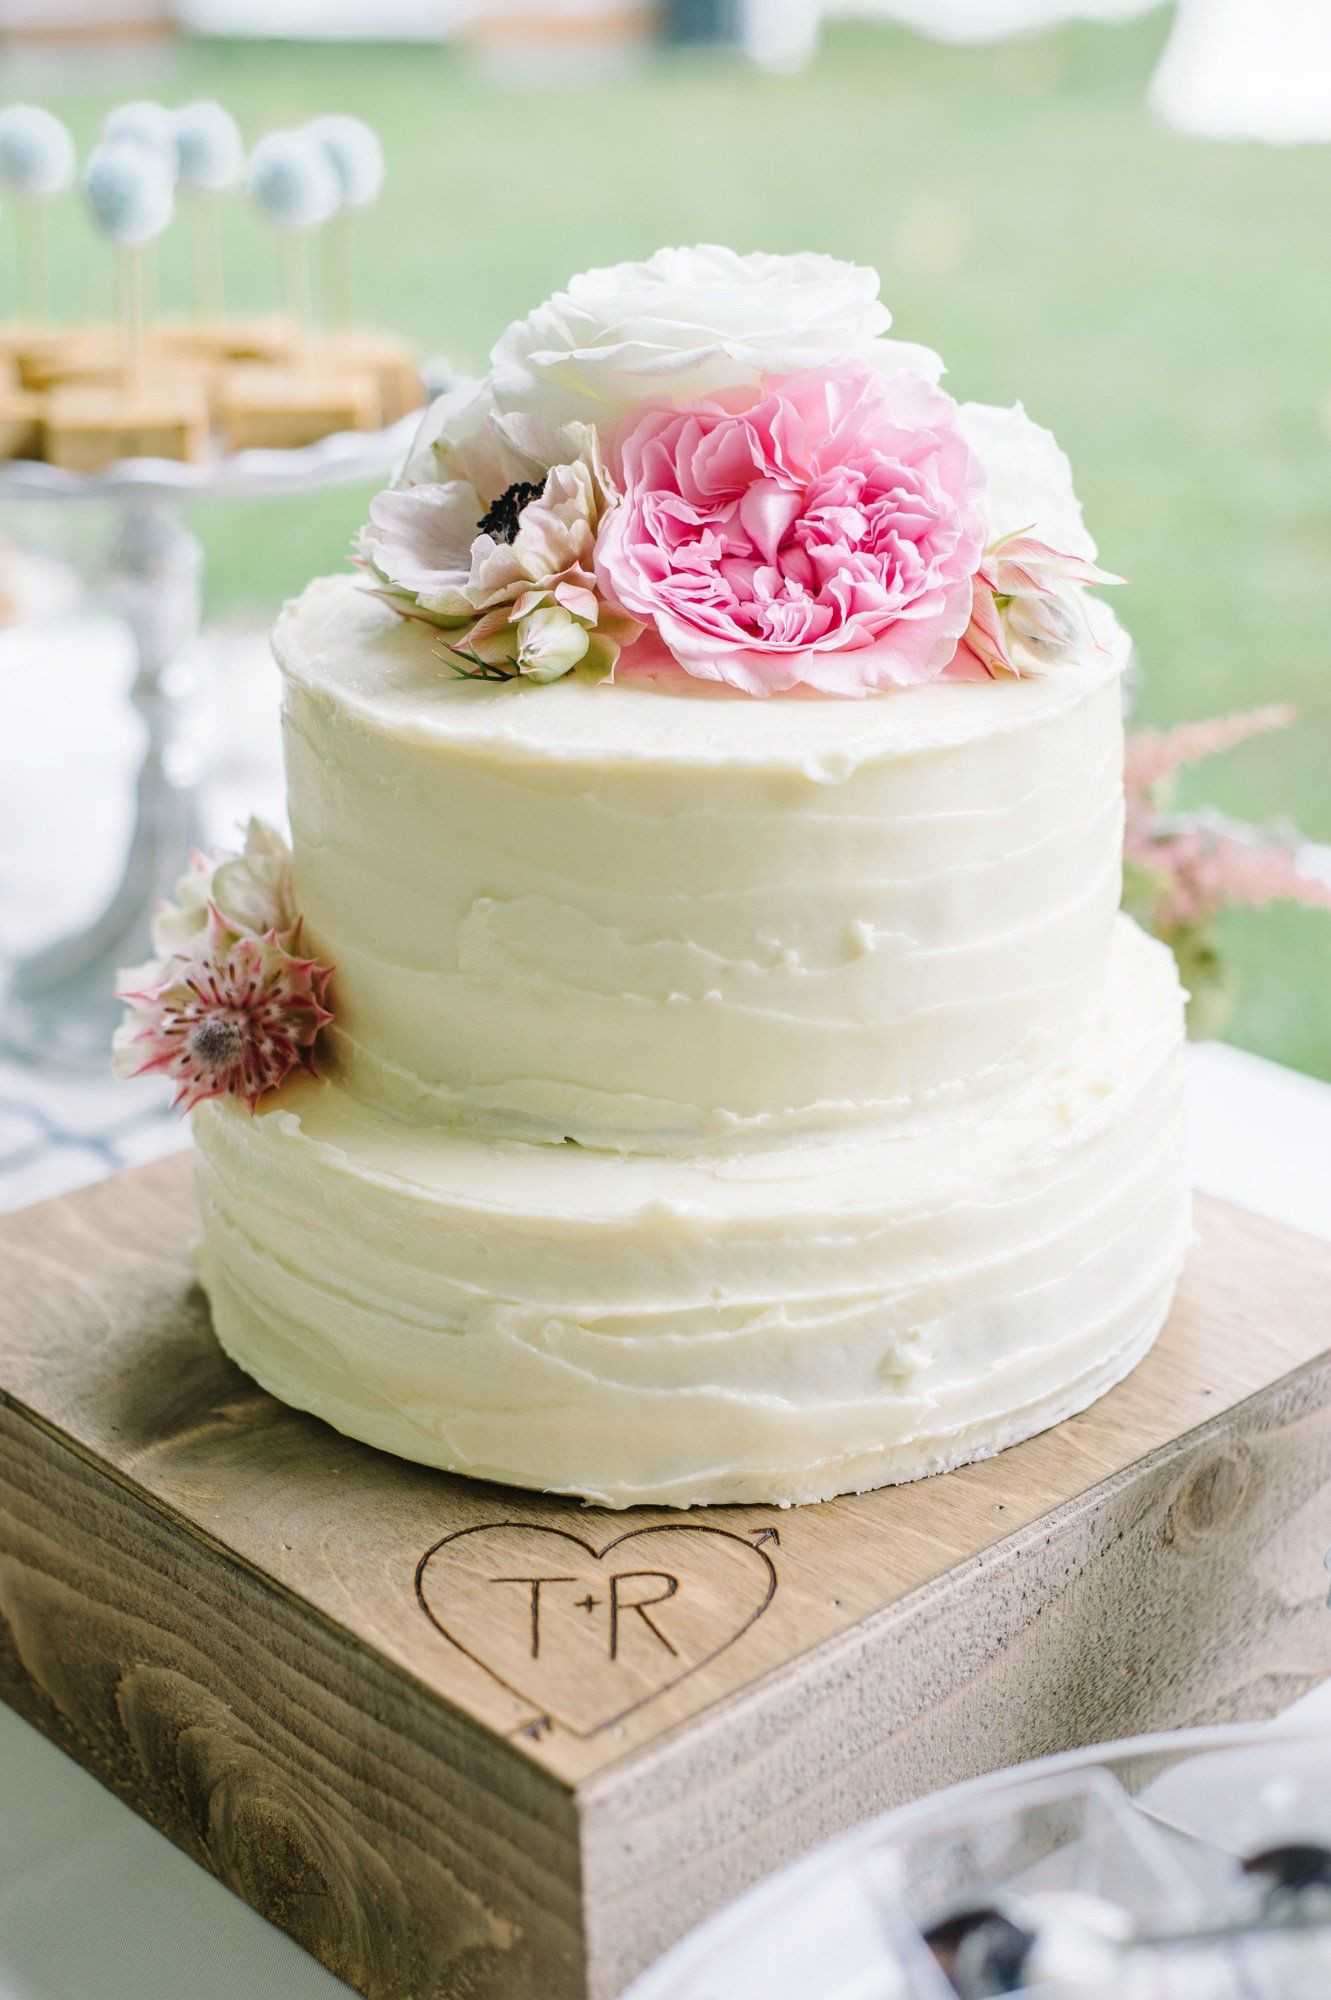 Wedding Cakes Two Tiers  Two Tier Buttercream Wedding Cake